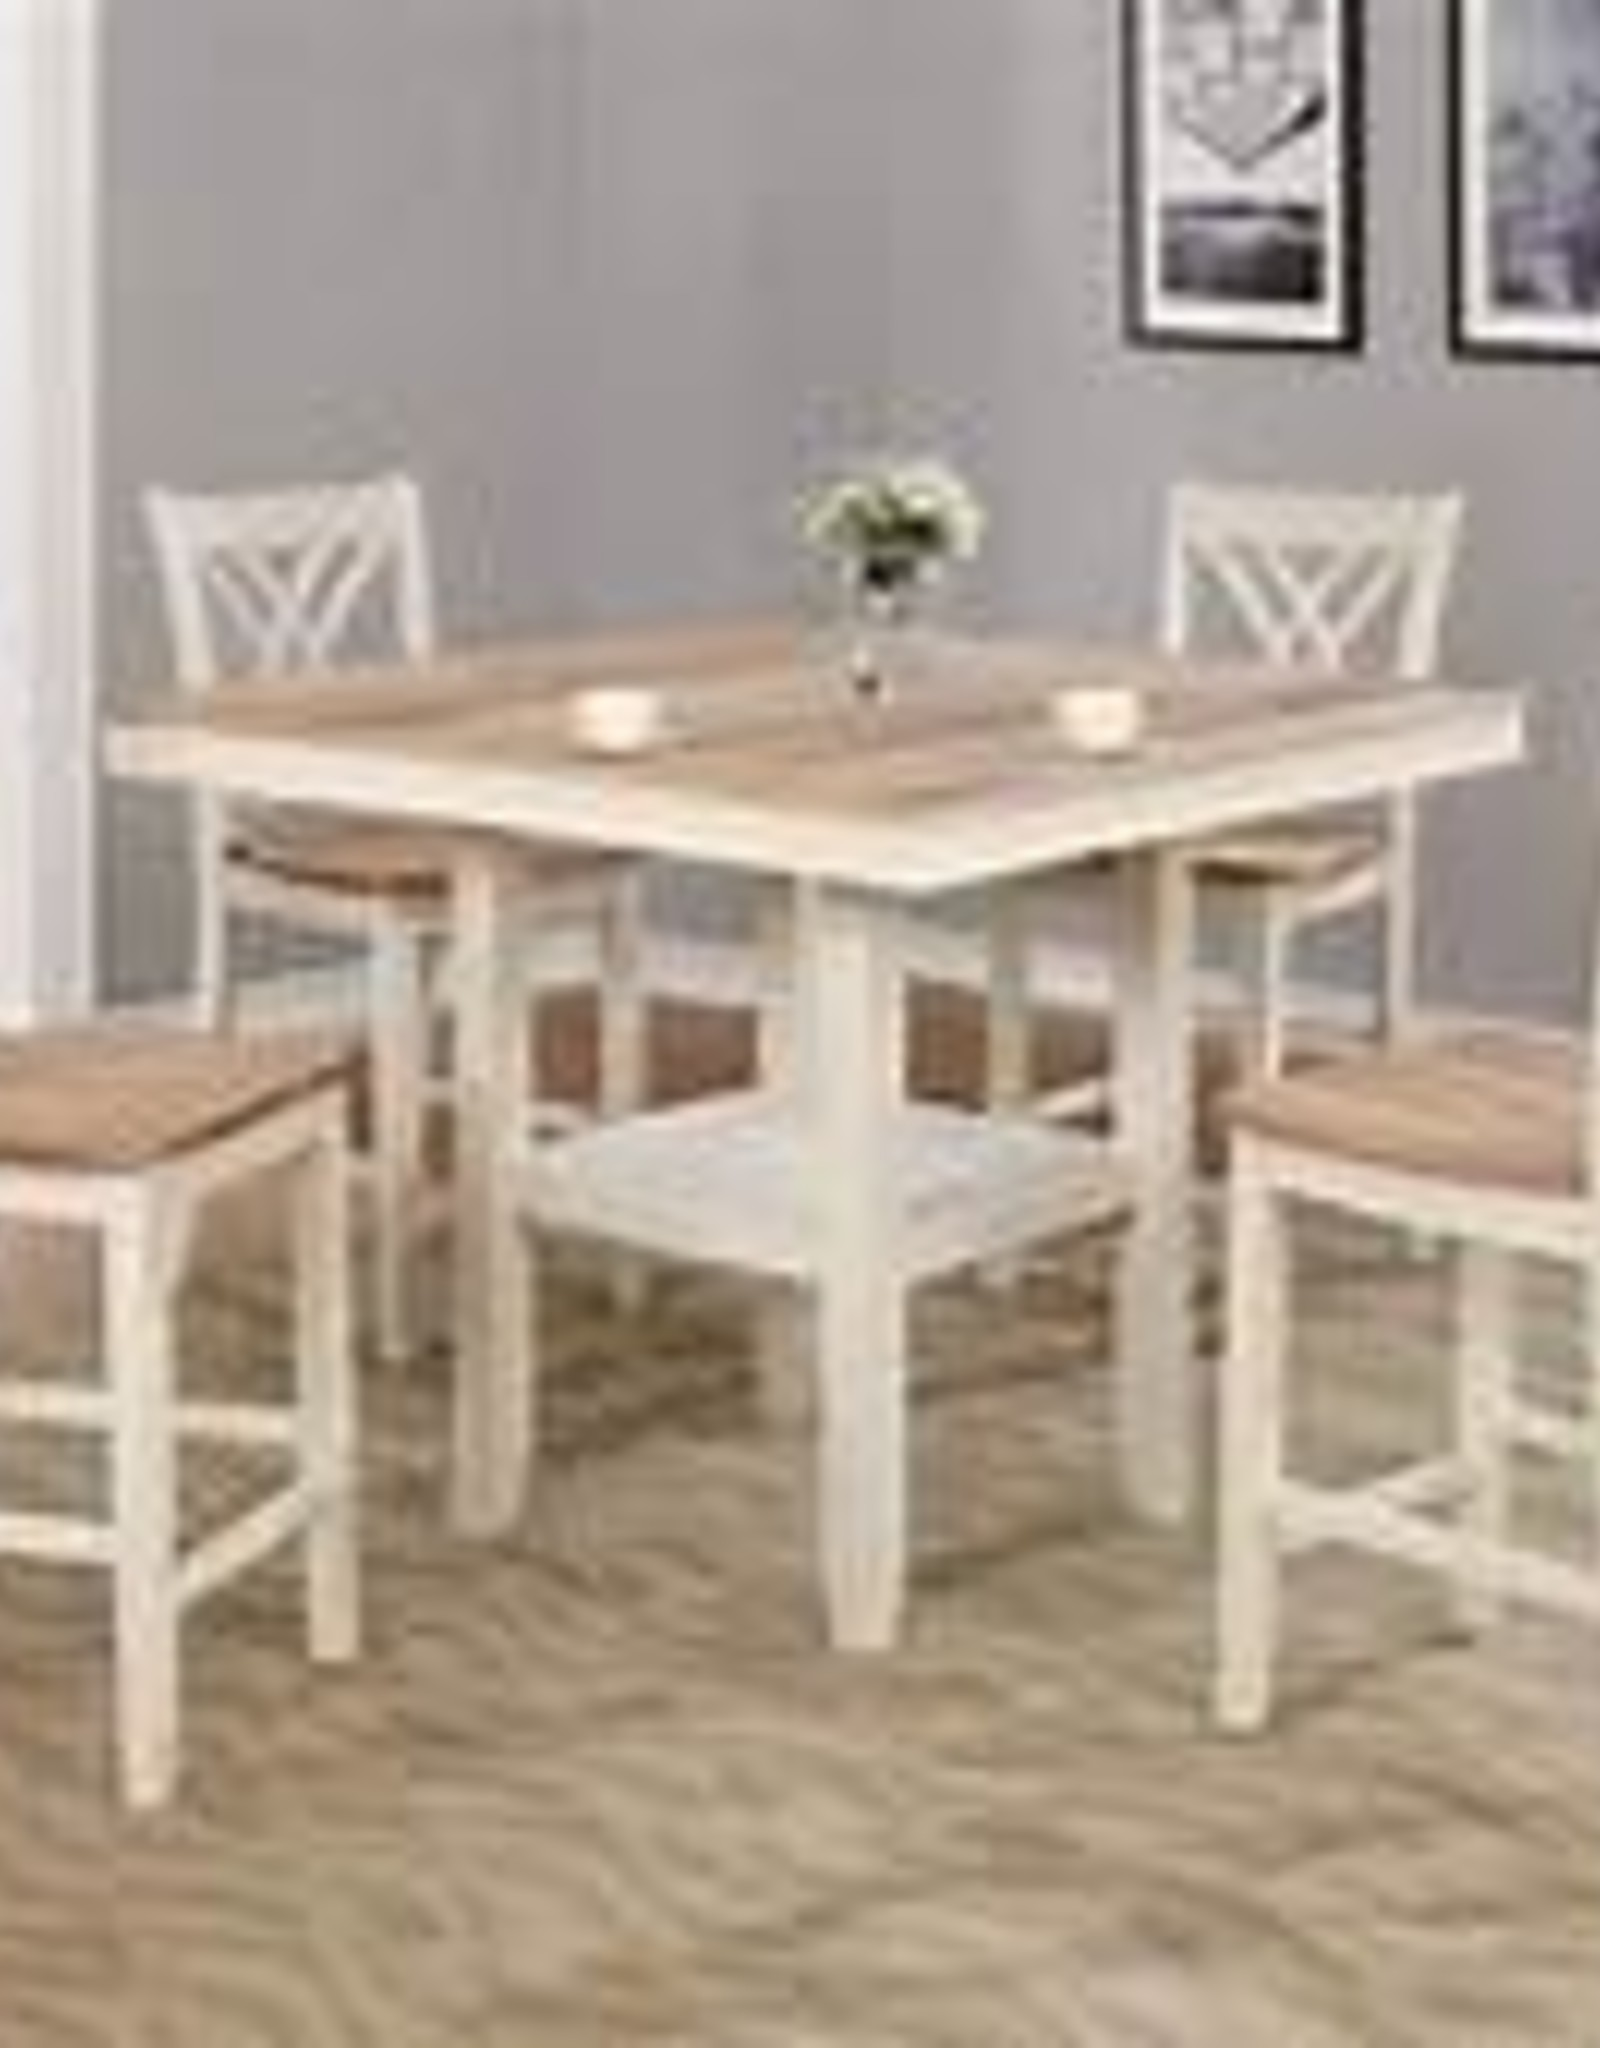 Crownmark Josie Counter-Height Table - White & Natural